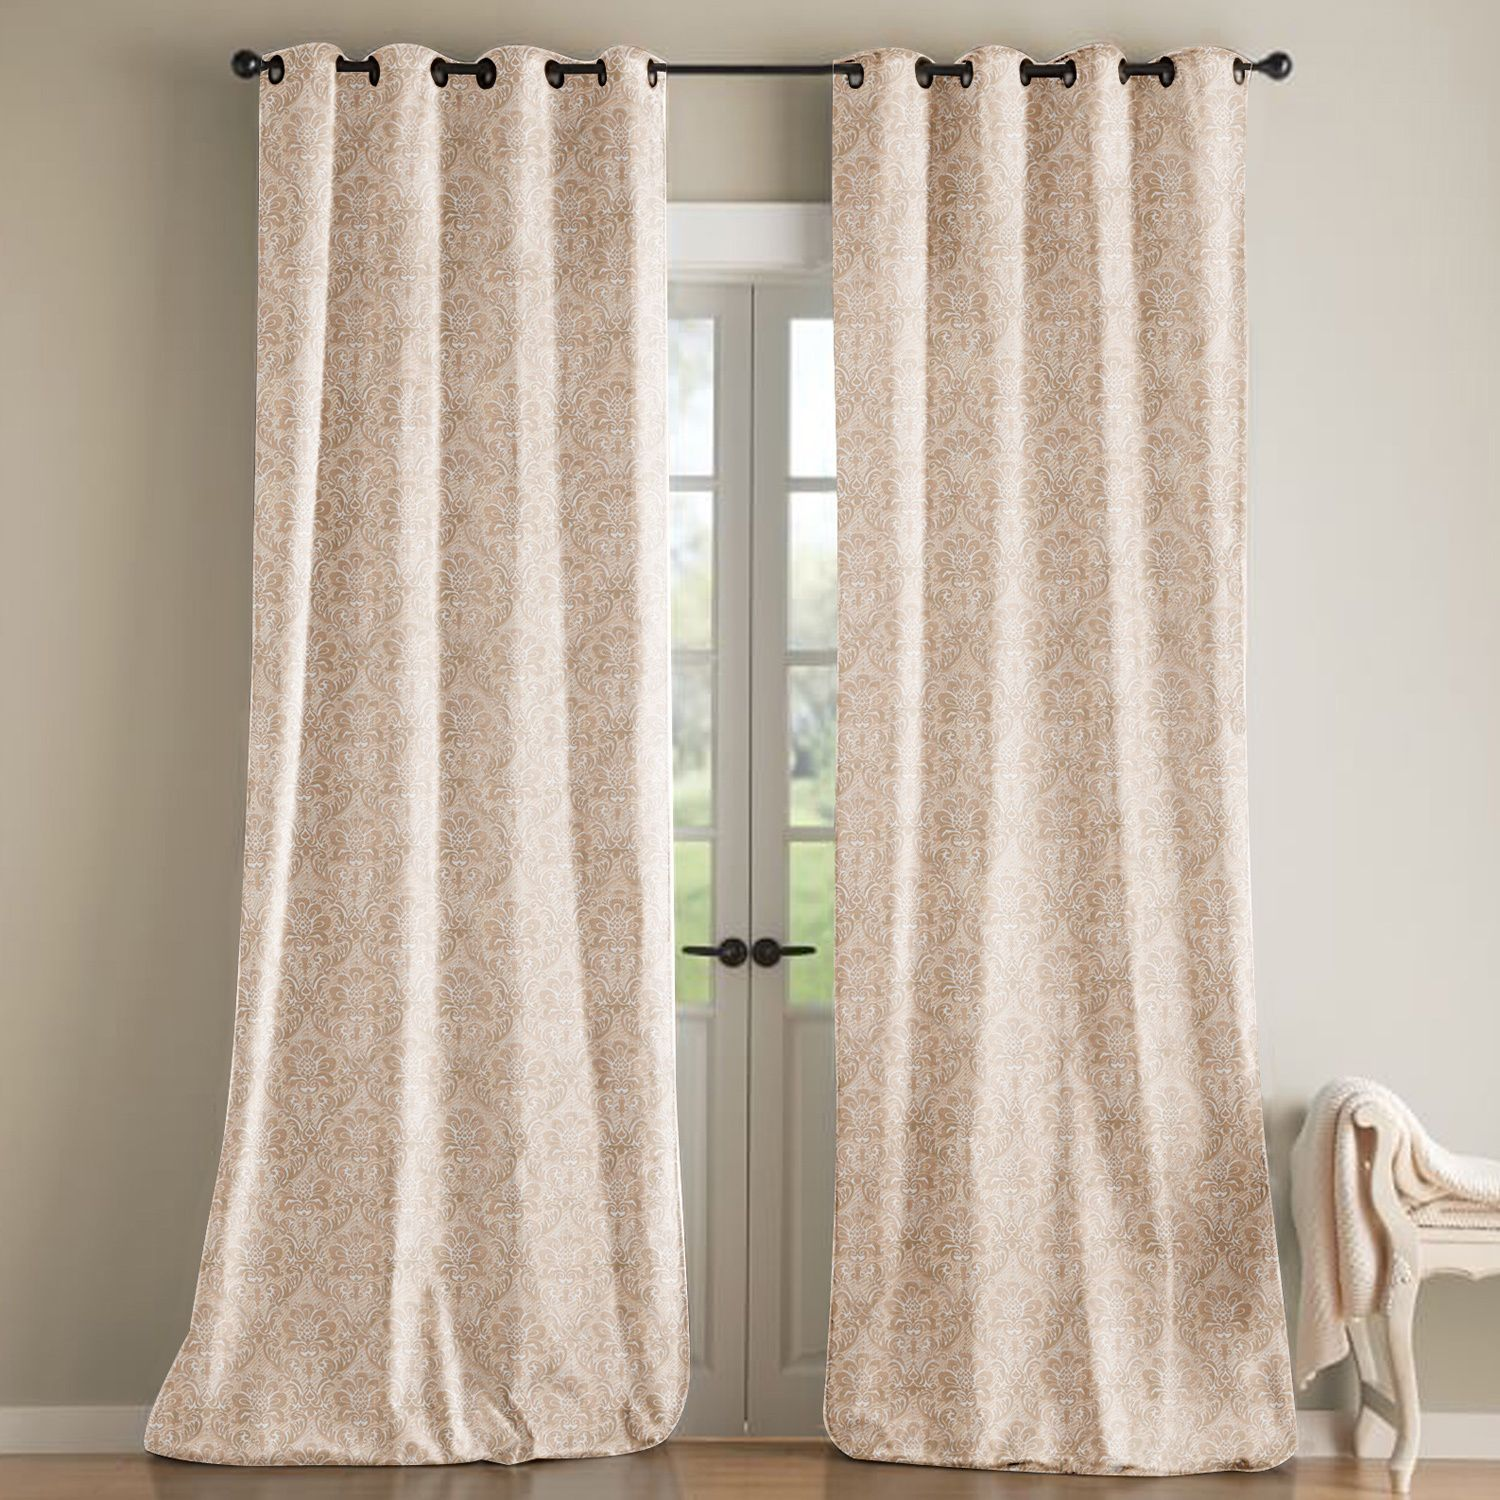 faux home dupioni free blackout overstock product exclusive today fabrics curtain true garden vintage shipping silk curtains textured